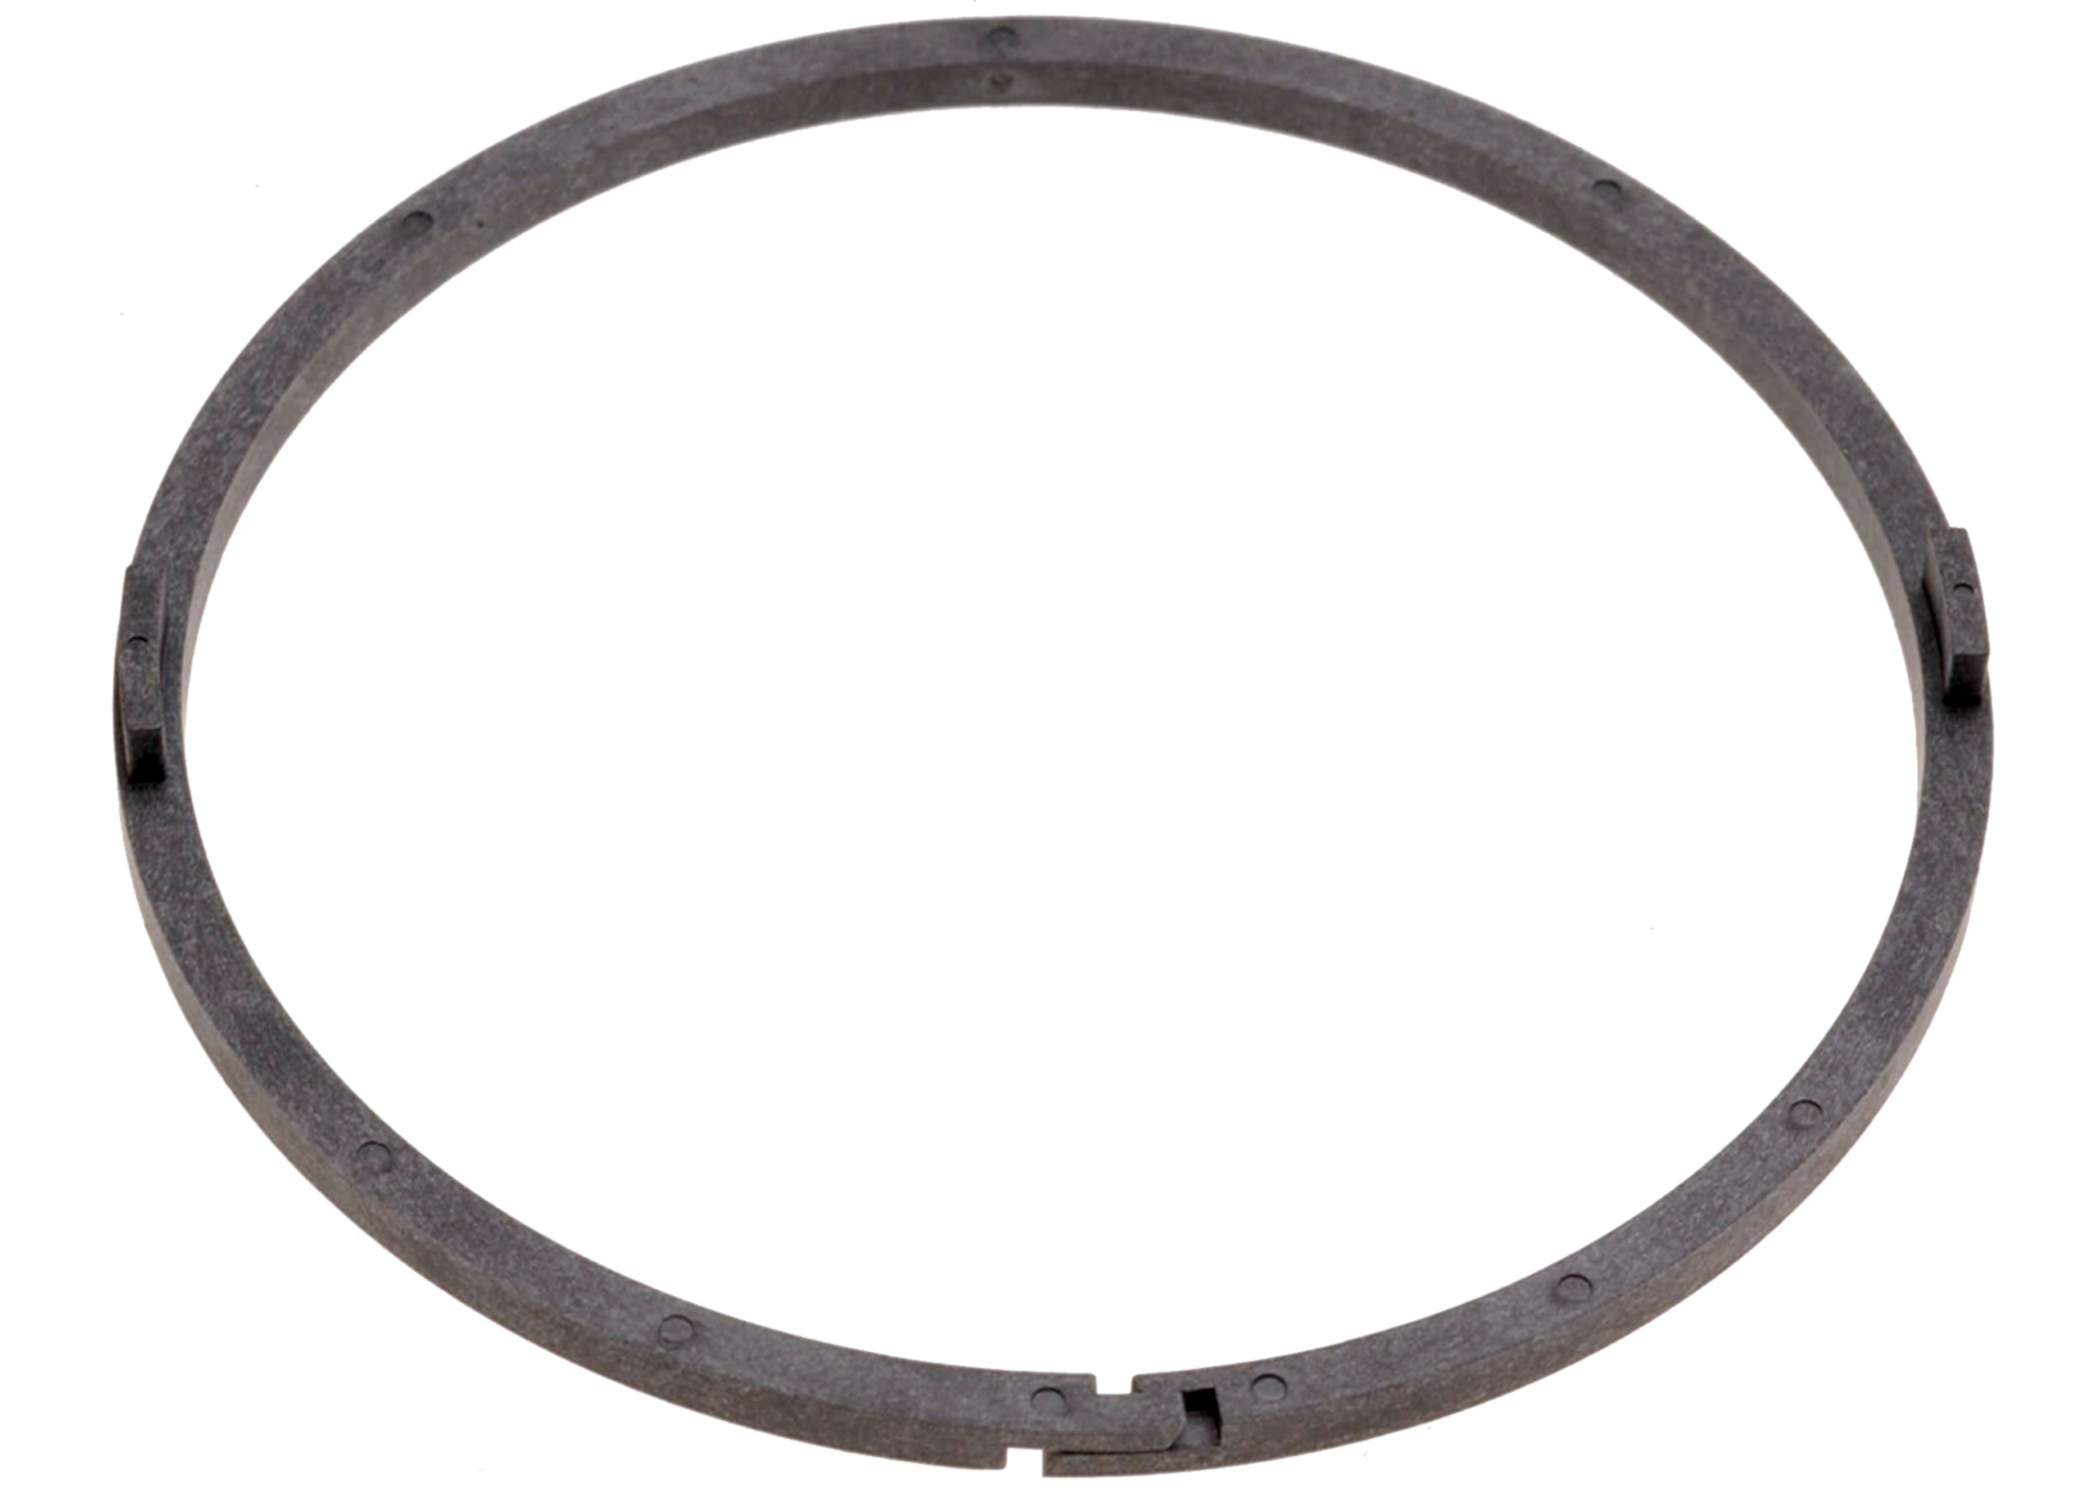 ACDELCO OE SERVICE - 2nd Clutch Housing Fluid Seal Ring Seal - DCB 24209498